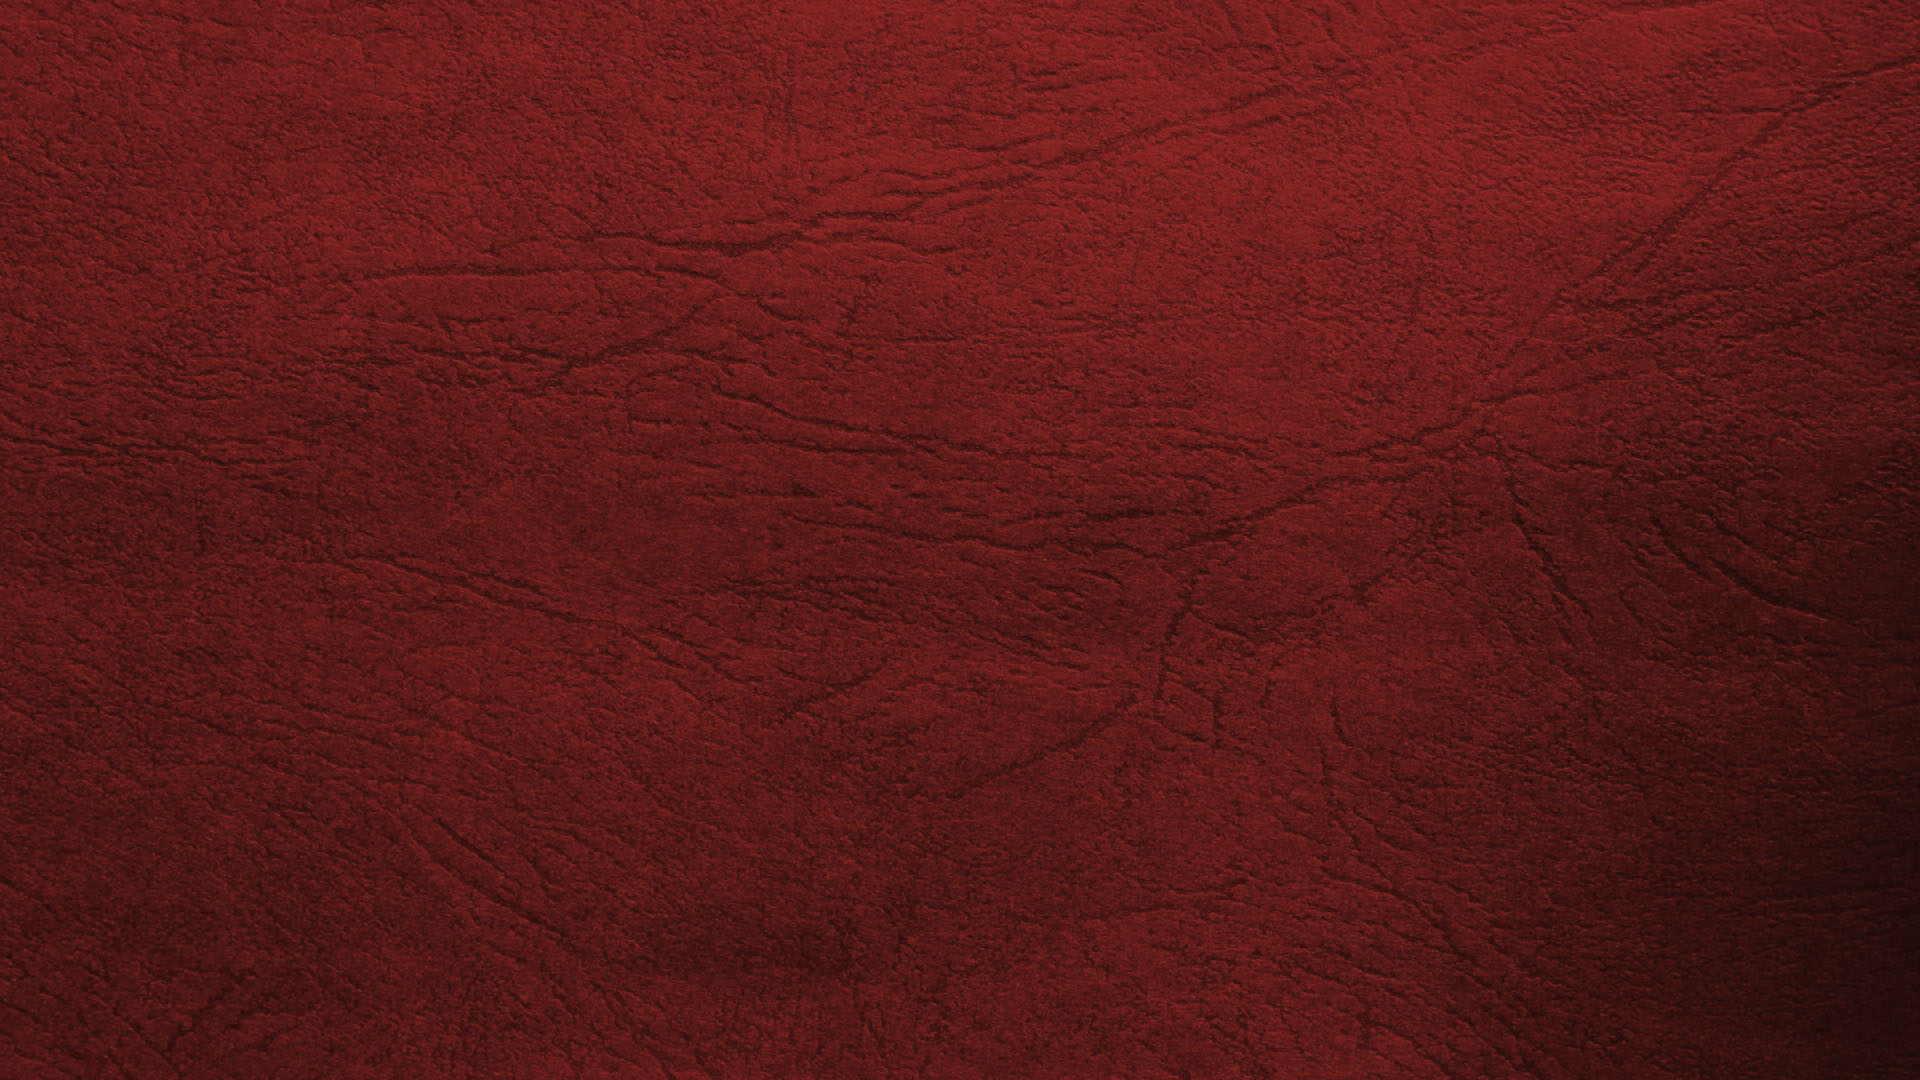 Arabian Acres 604 Red Leather Texture Picture Free